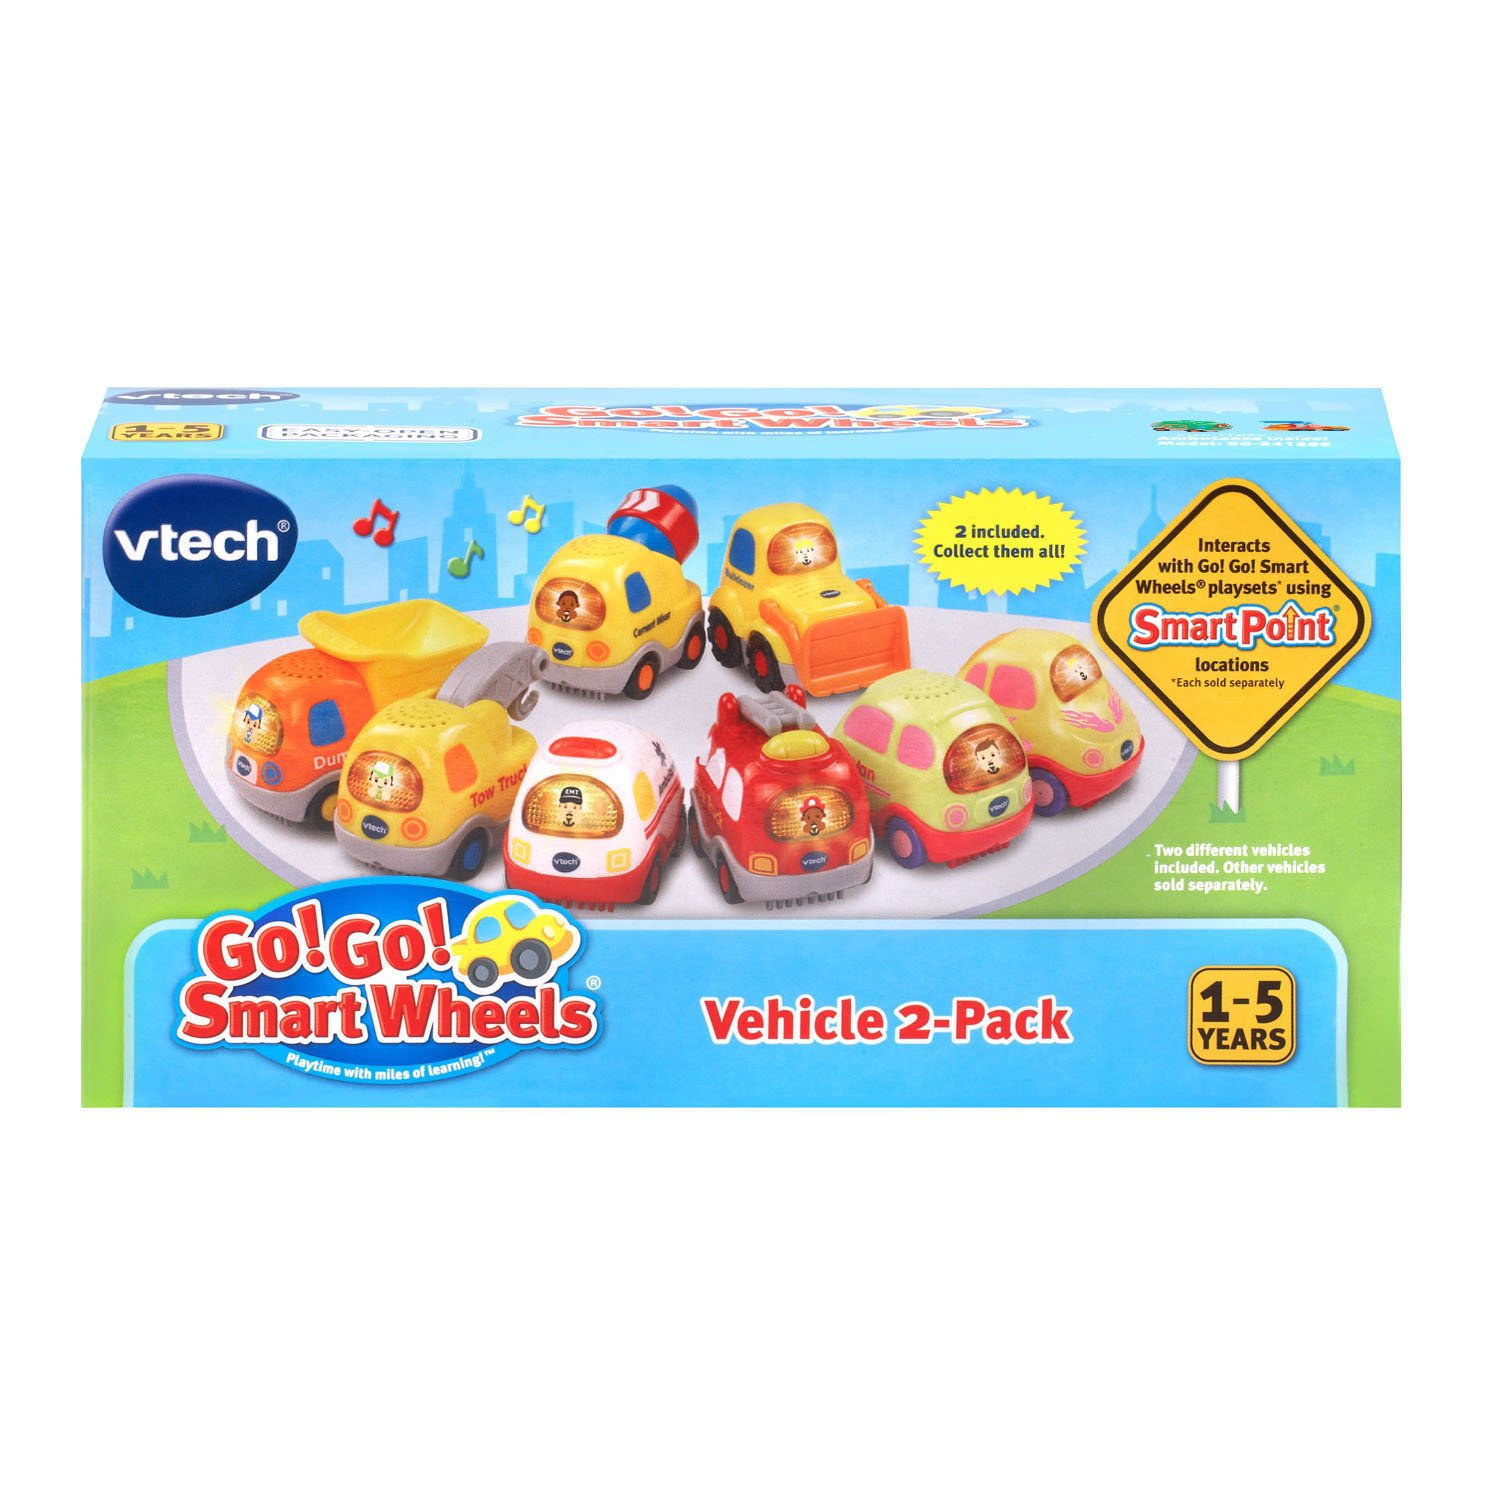 VTech Go! Go! Smart Wheels Garbage Truck and Excavator by VTech (Image #7)